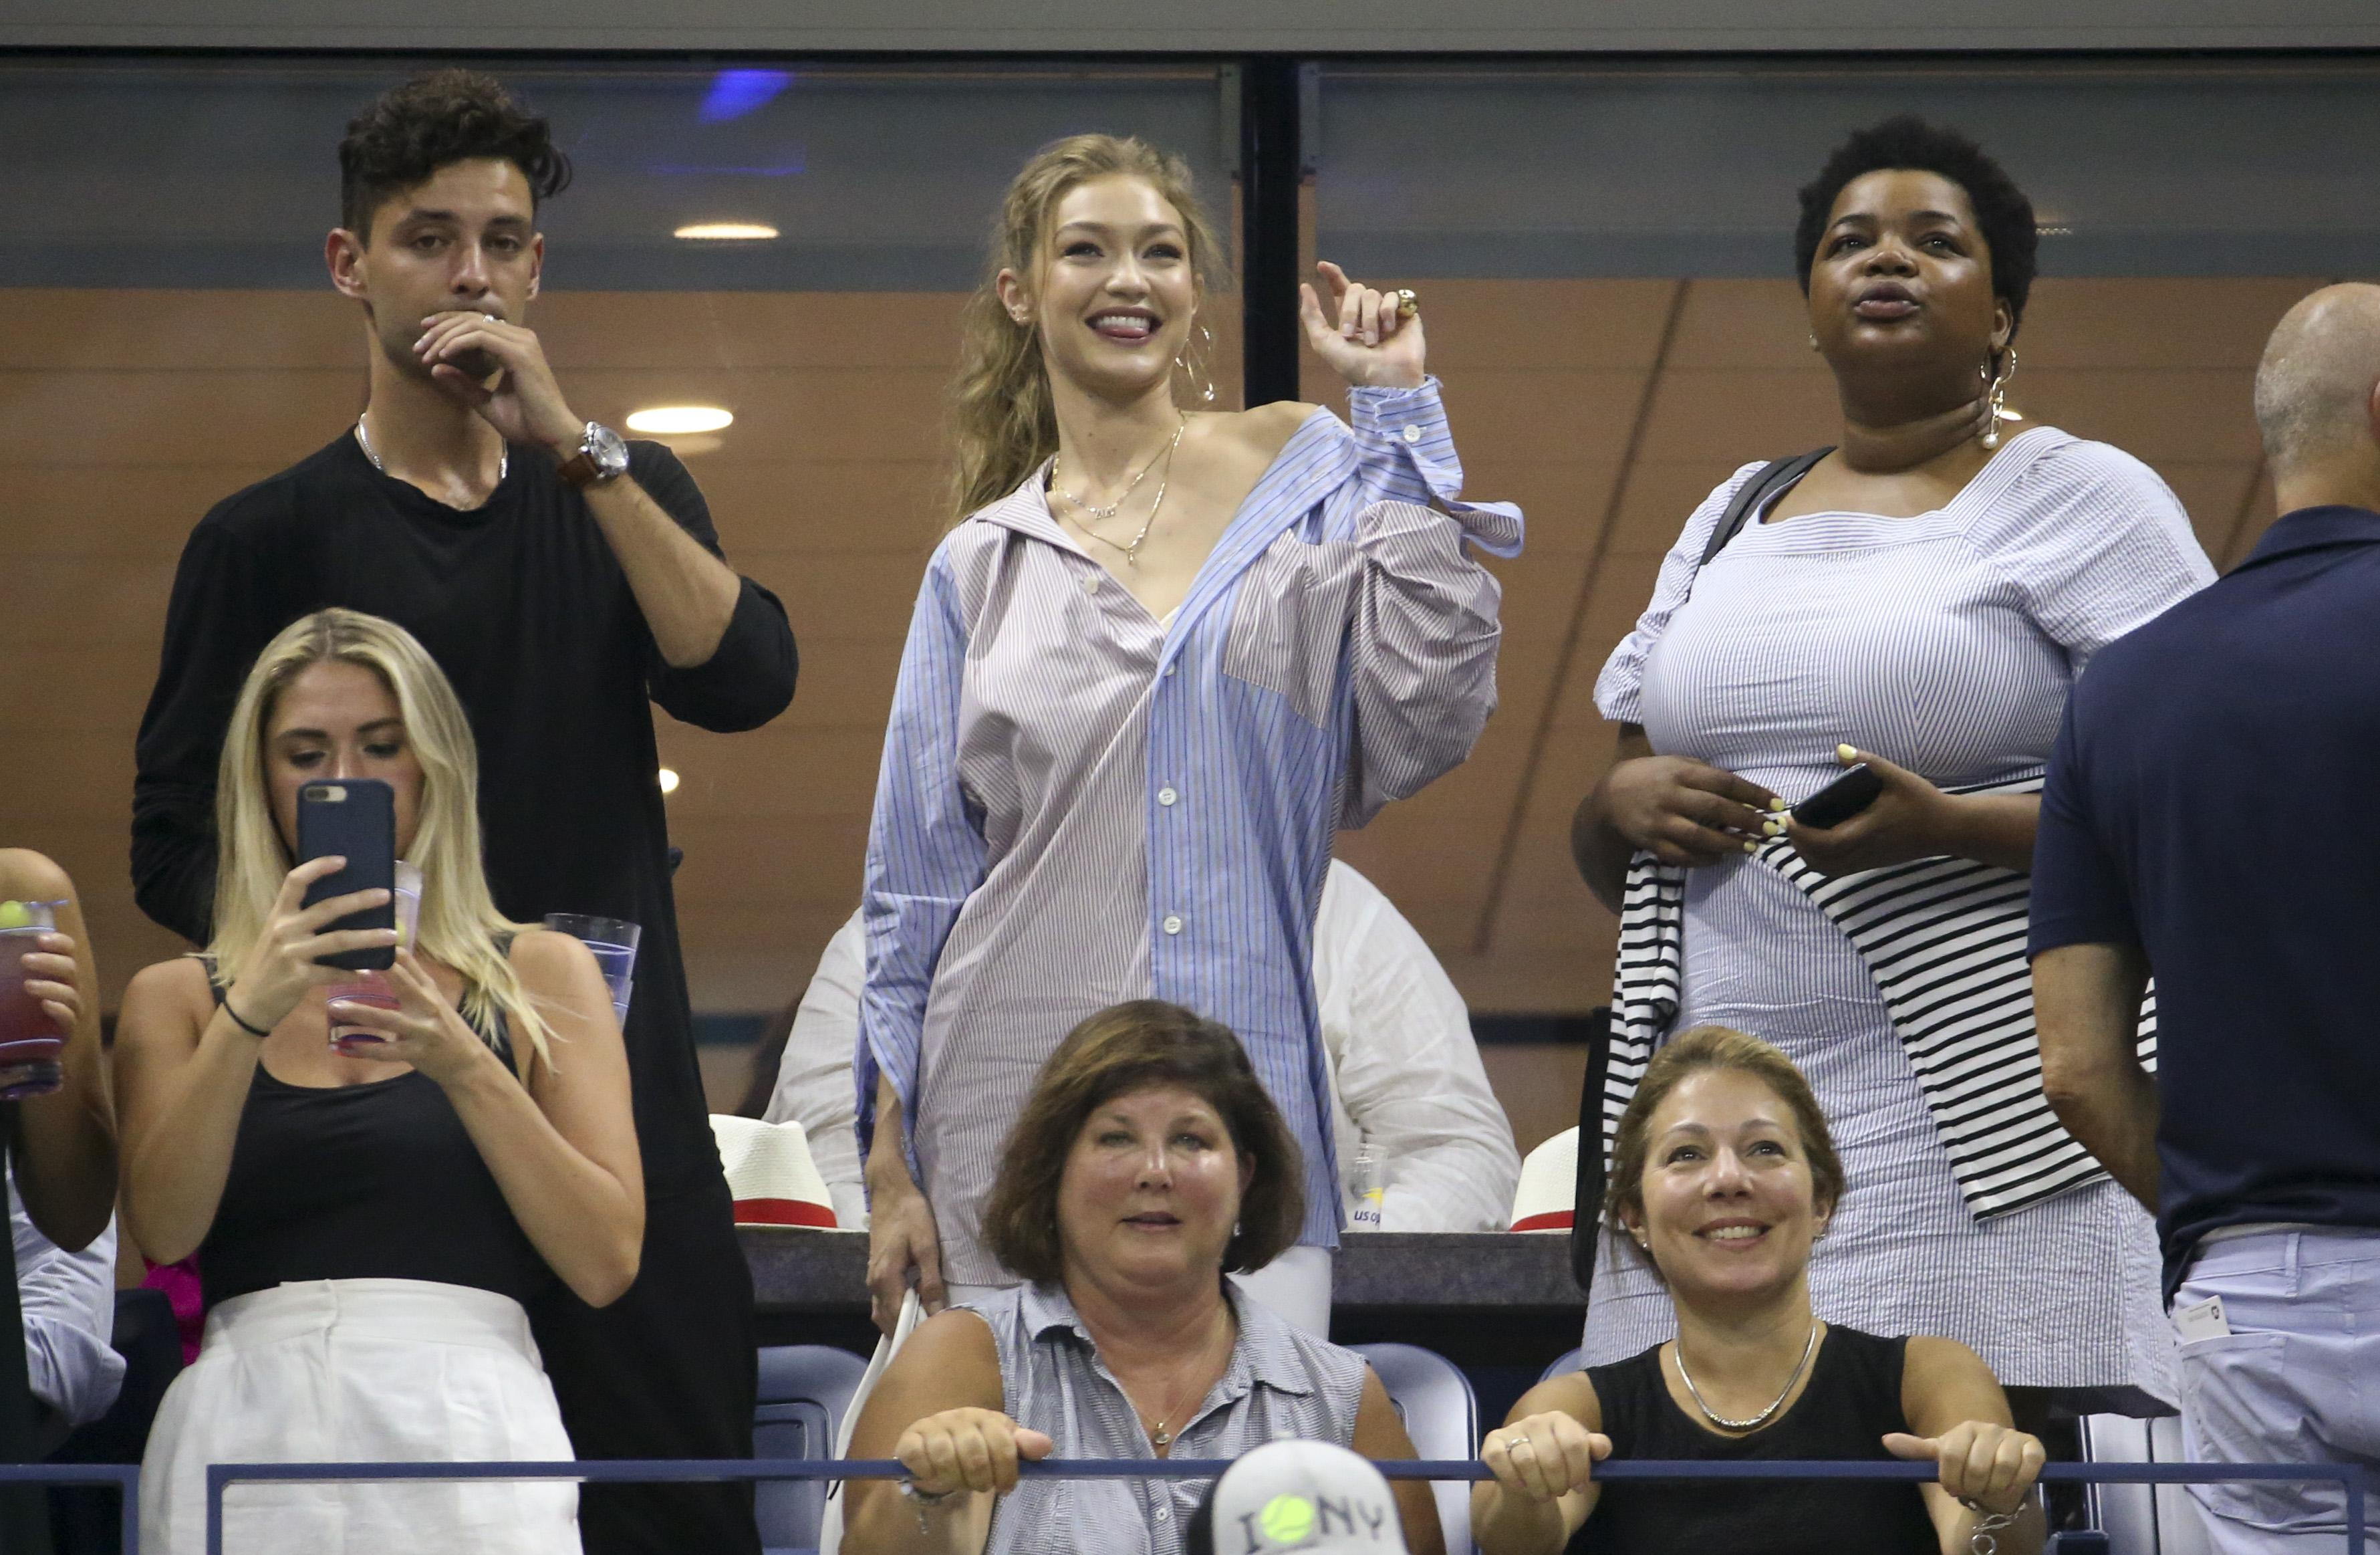 Gigi Hadid looks pleased as Serena Williams storms into the semi-final